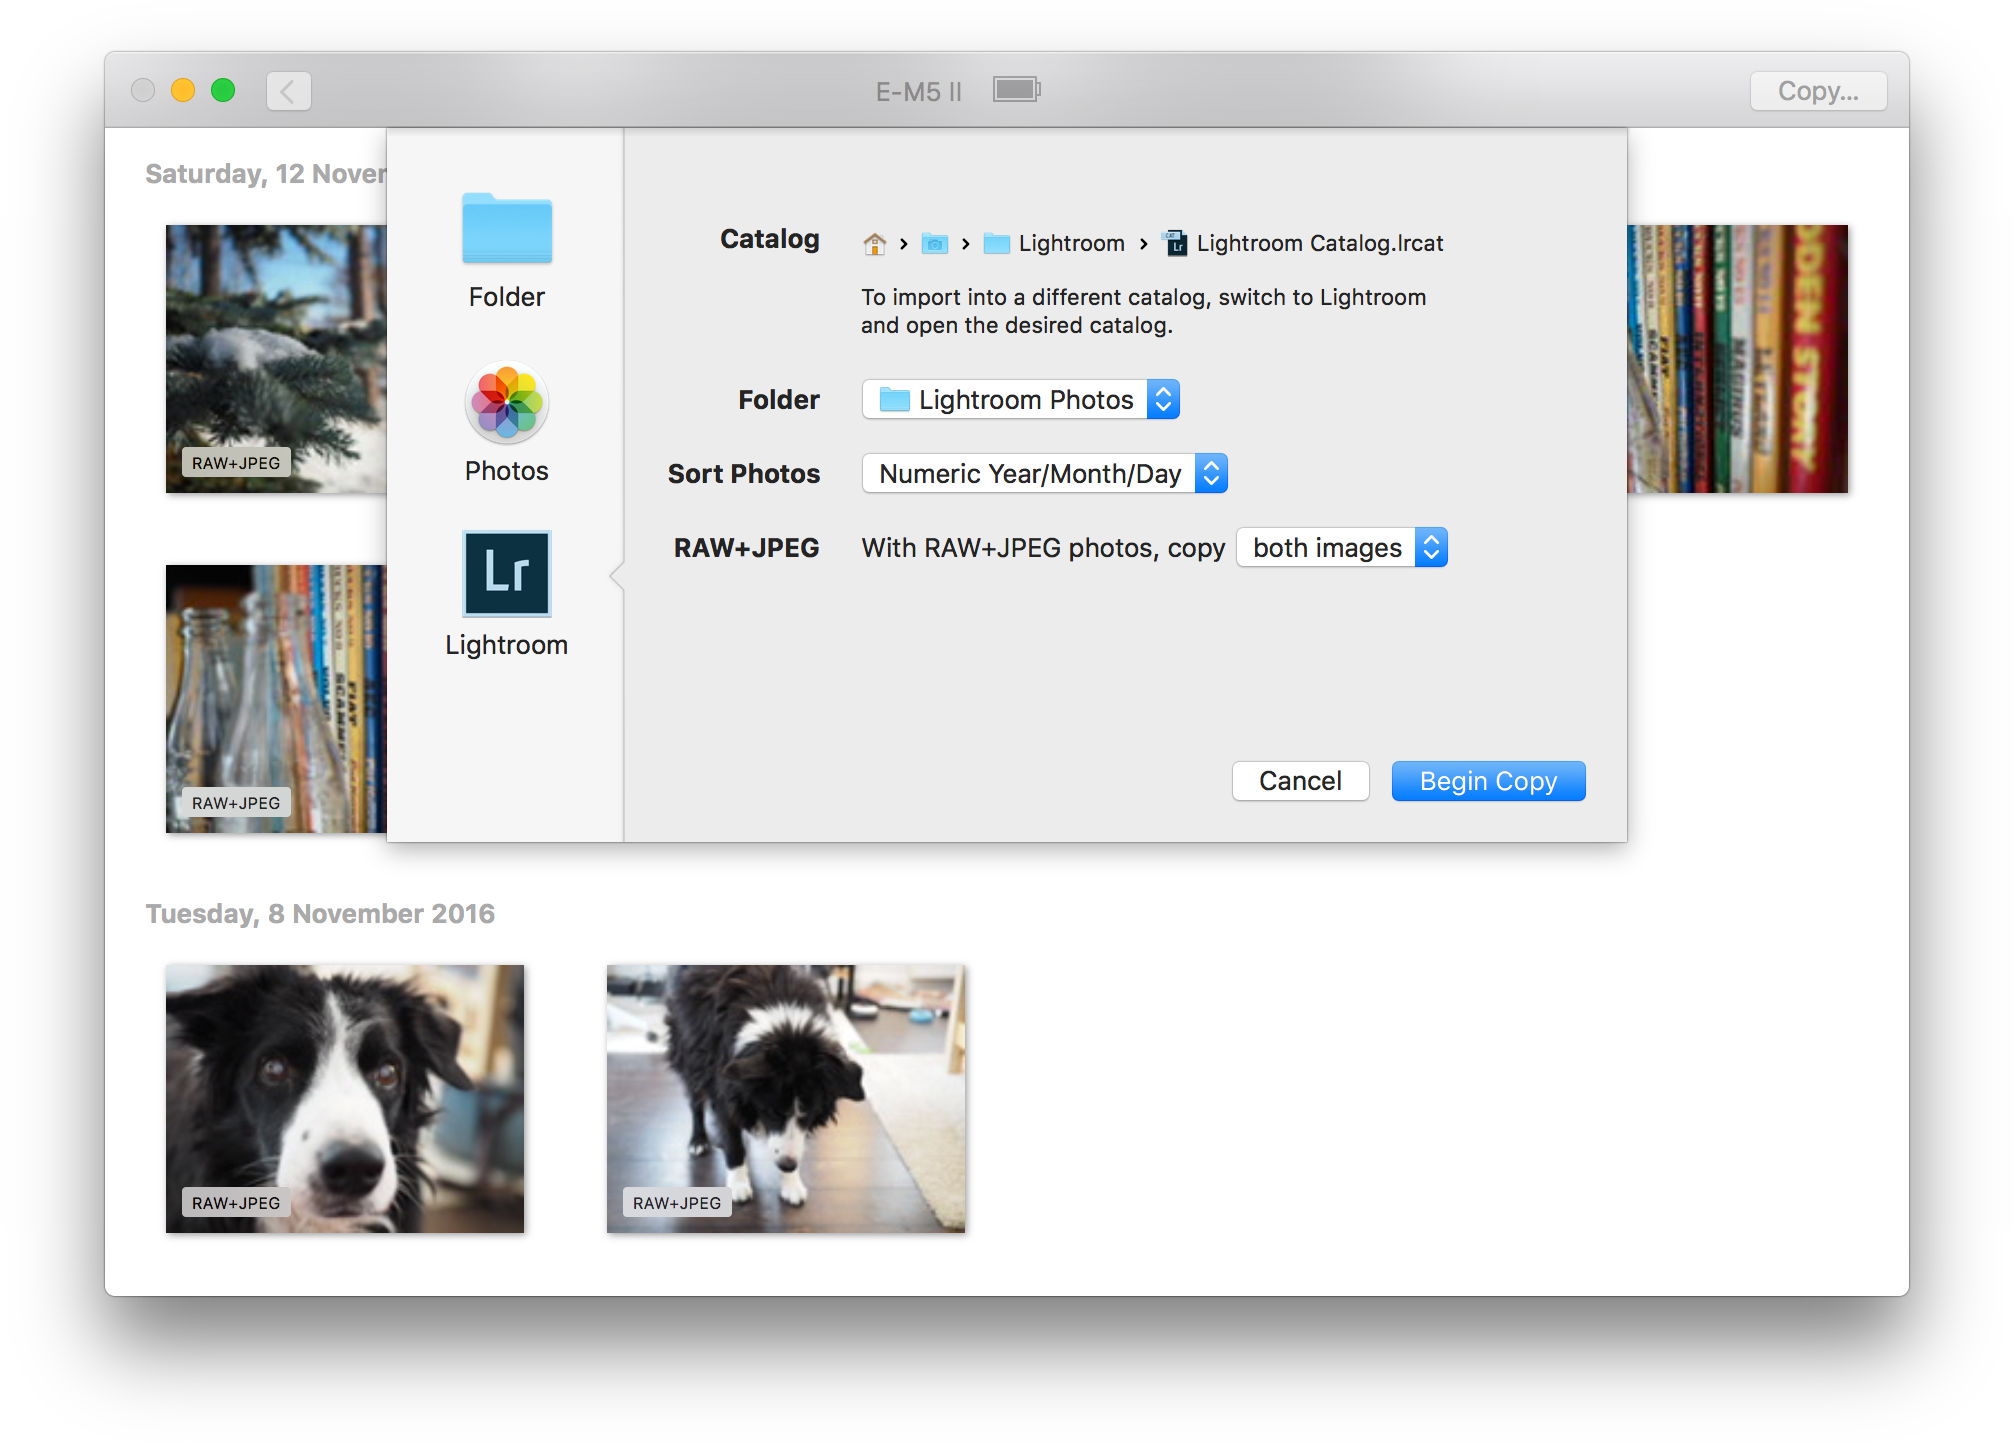 Cascable Transfer for Mac - Import photos from your WiFi-enabled camera Image